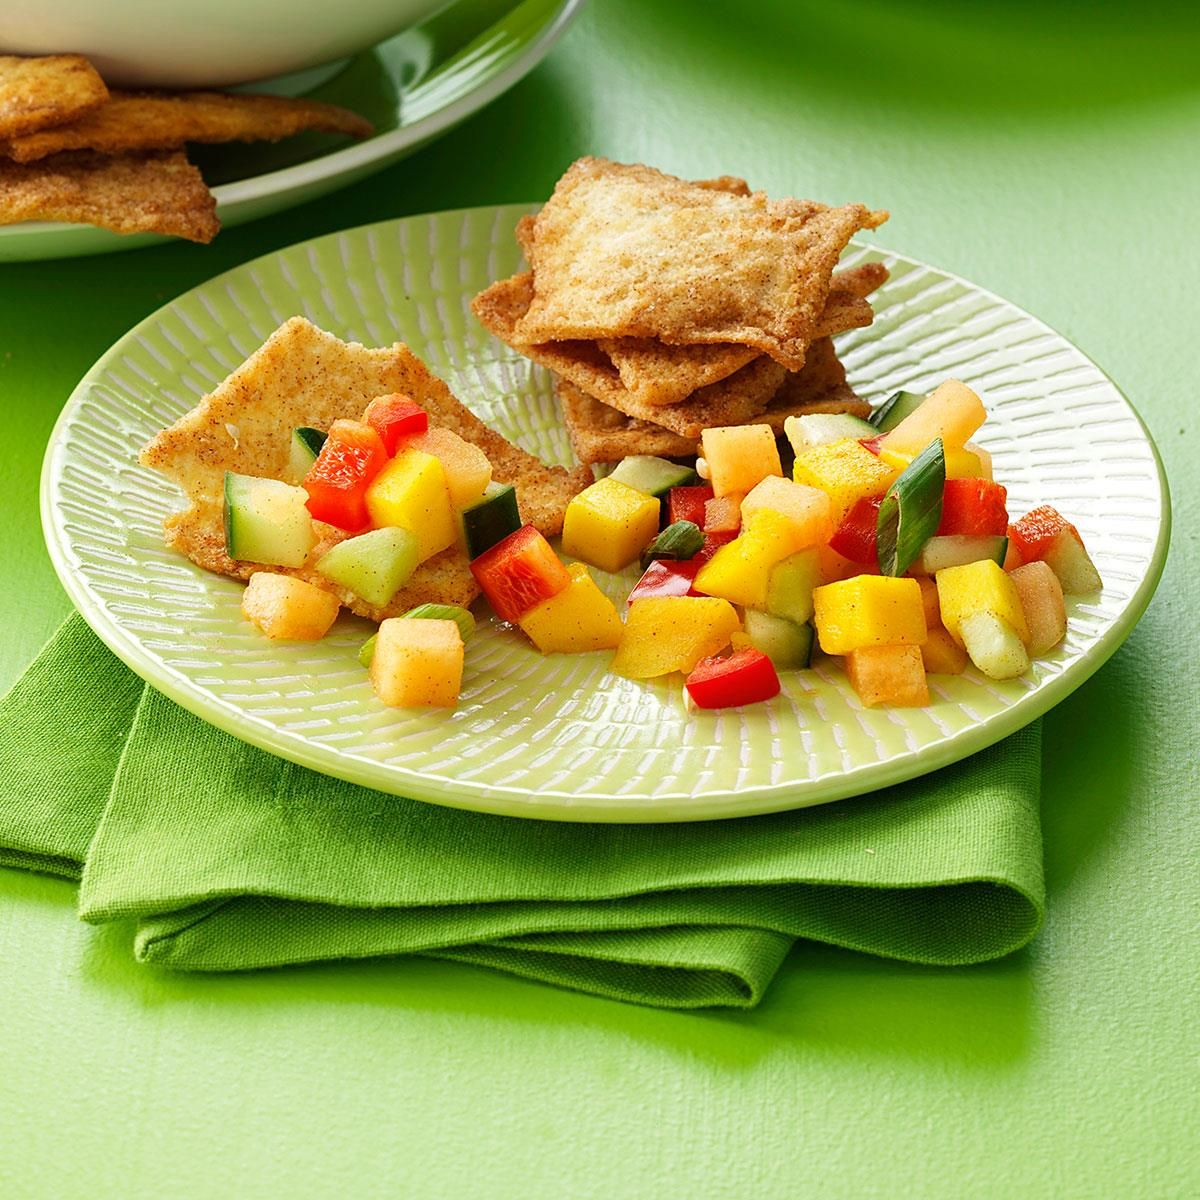 """Melon-Mango Salsa Recipe -""""After tasting a similar salsa on top of fresh fish at a fishing tournament, I went home and tried to duplicate it. This is my surprising result! It's terrific with cinnamon pita chips."""" —Sylvia Fincham, New Bern, North Carolina"""